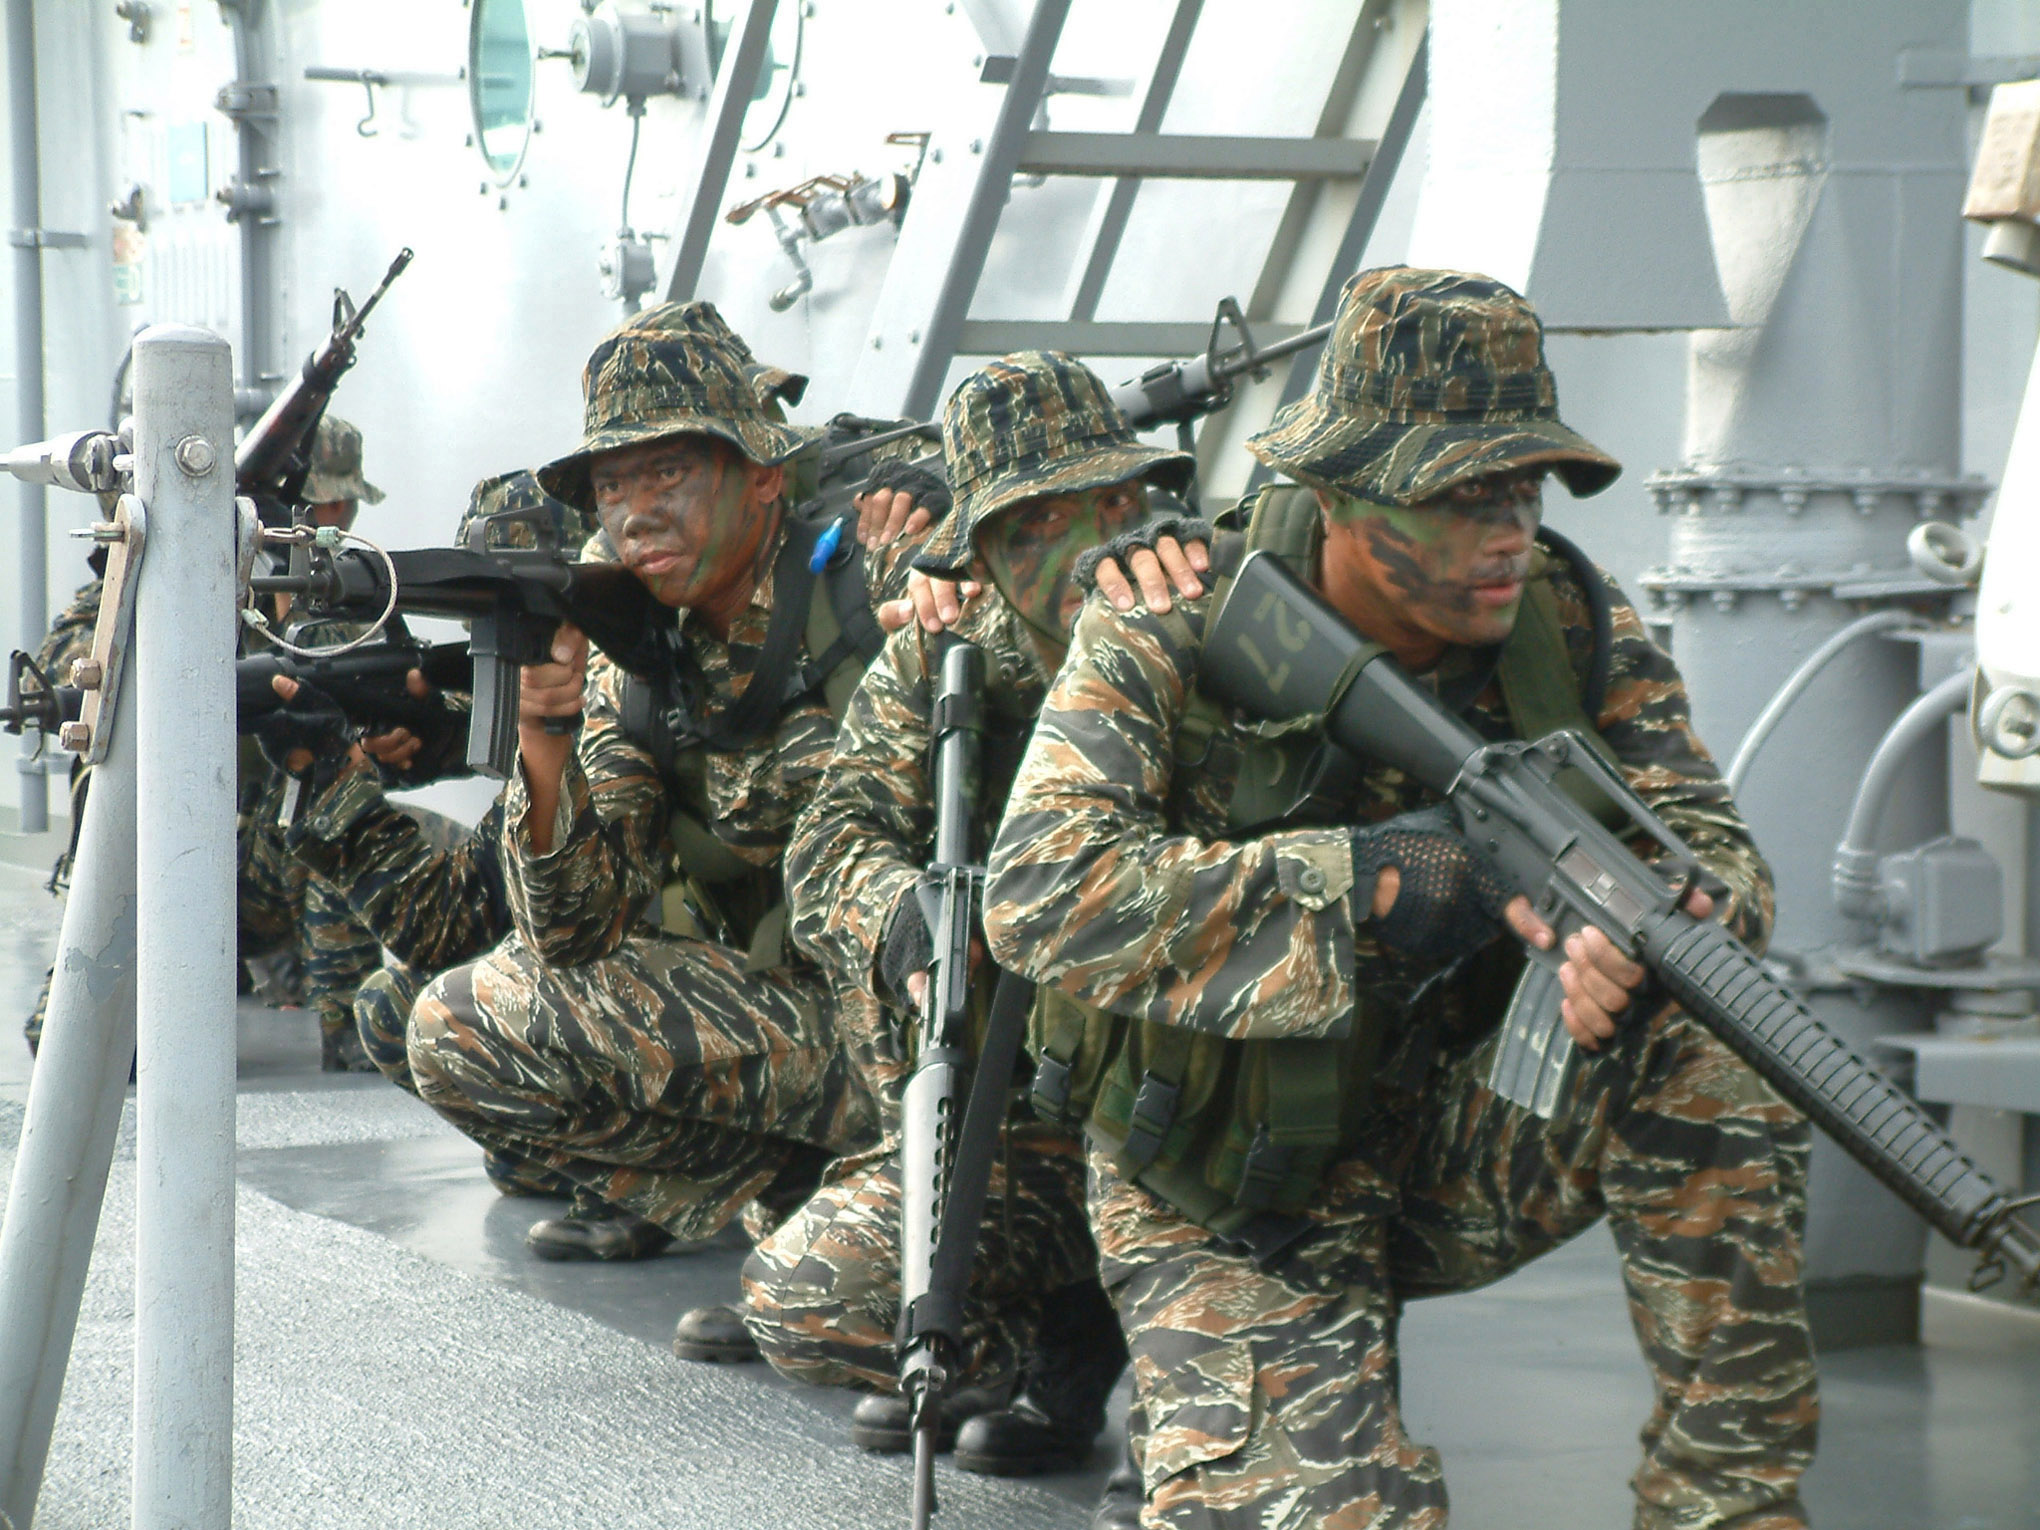 Pintar réplicas US_Navy_040730-N-7720S-045_Members_assigned_to_the_Philippine_Naval_Special_Warfare_Group_(SWAG)_Nine_One_crouch_low_and_move_together_on_the_deck_aboard_the_amphibious_dock_landing_ship_USS_Fort_McHenry_(LSD_43)